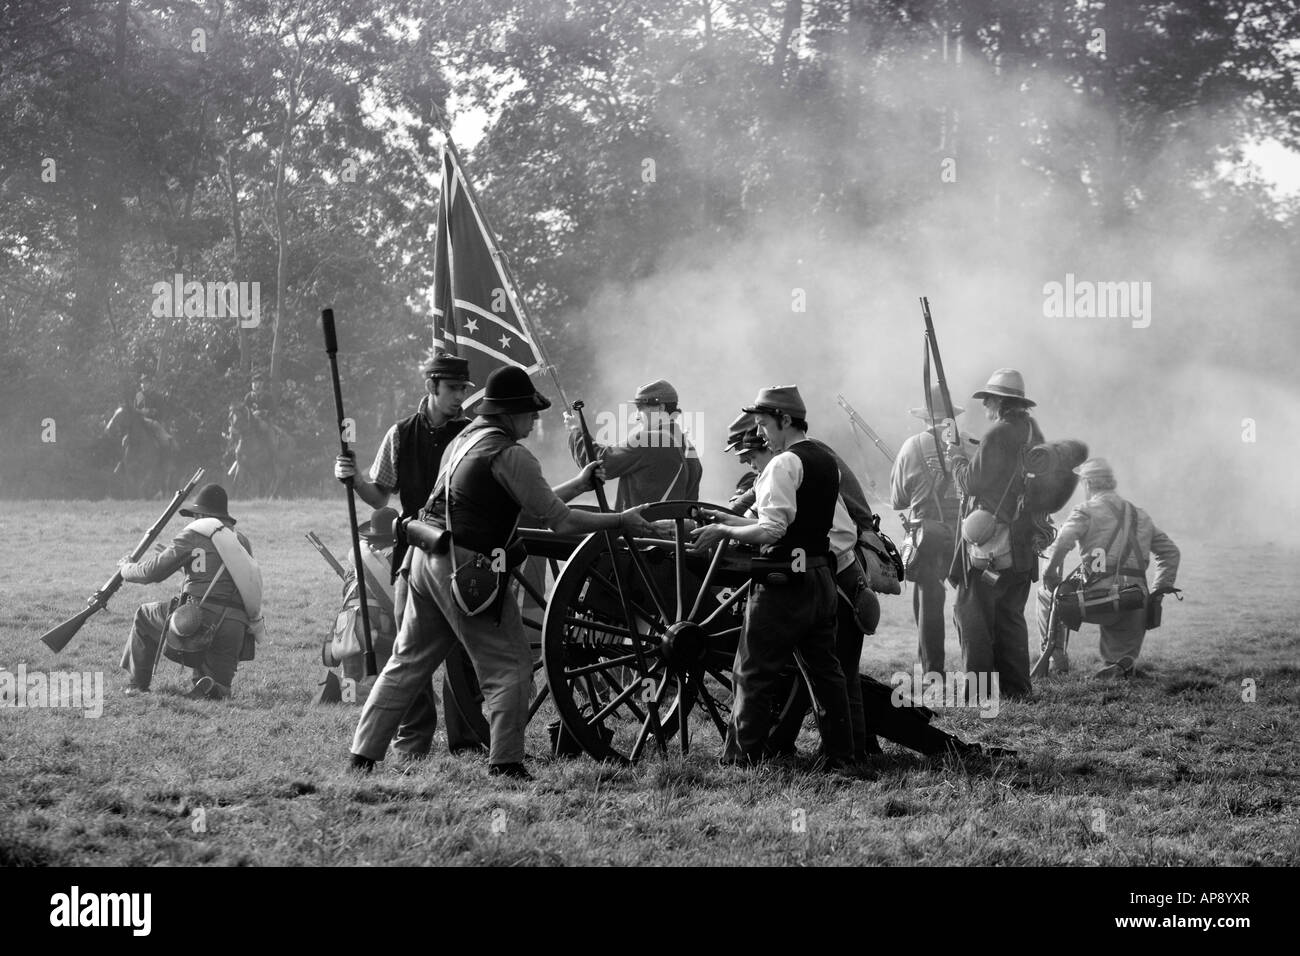 Confederate Soldiers. American Civil War re-enactment. FOR EDITORIAL USE ONLY - Stock Image